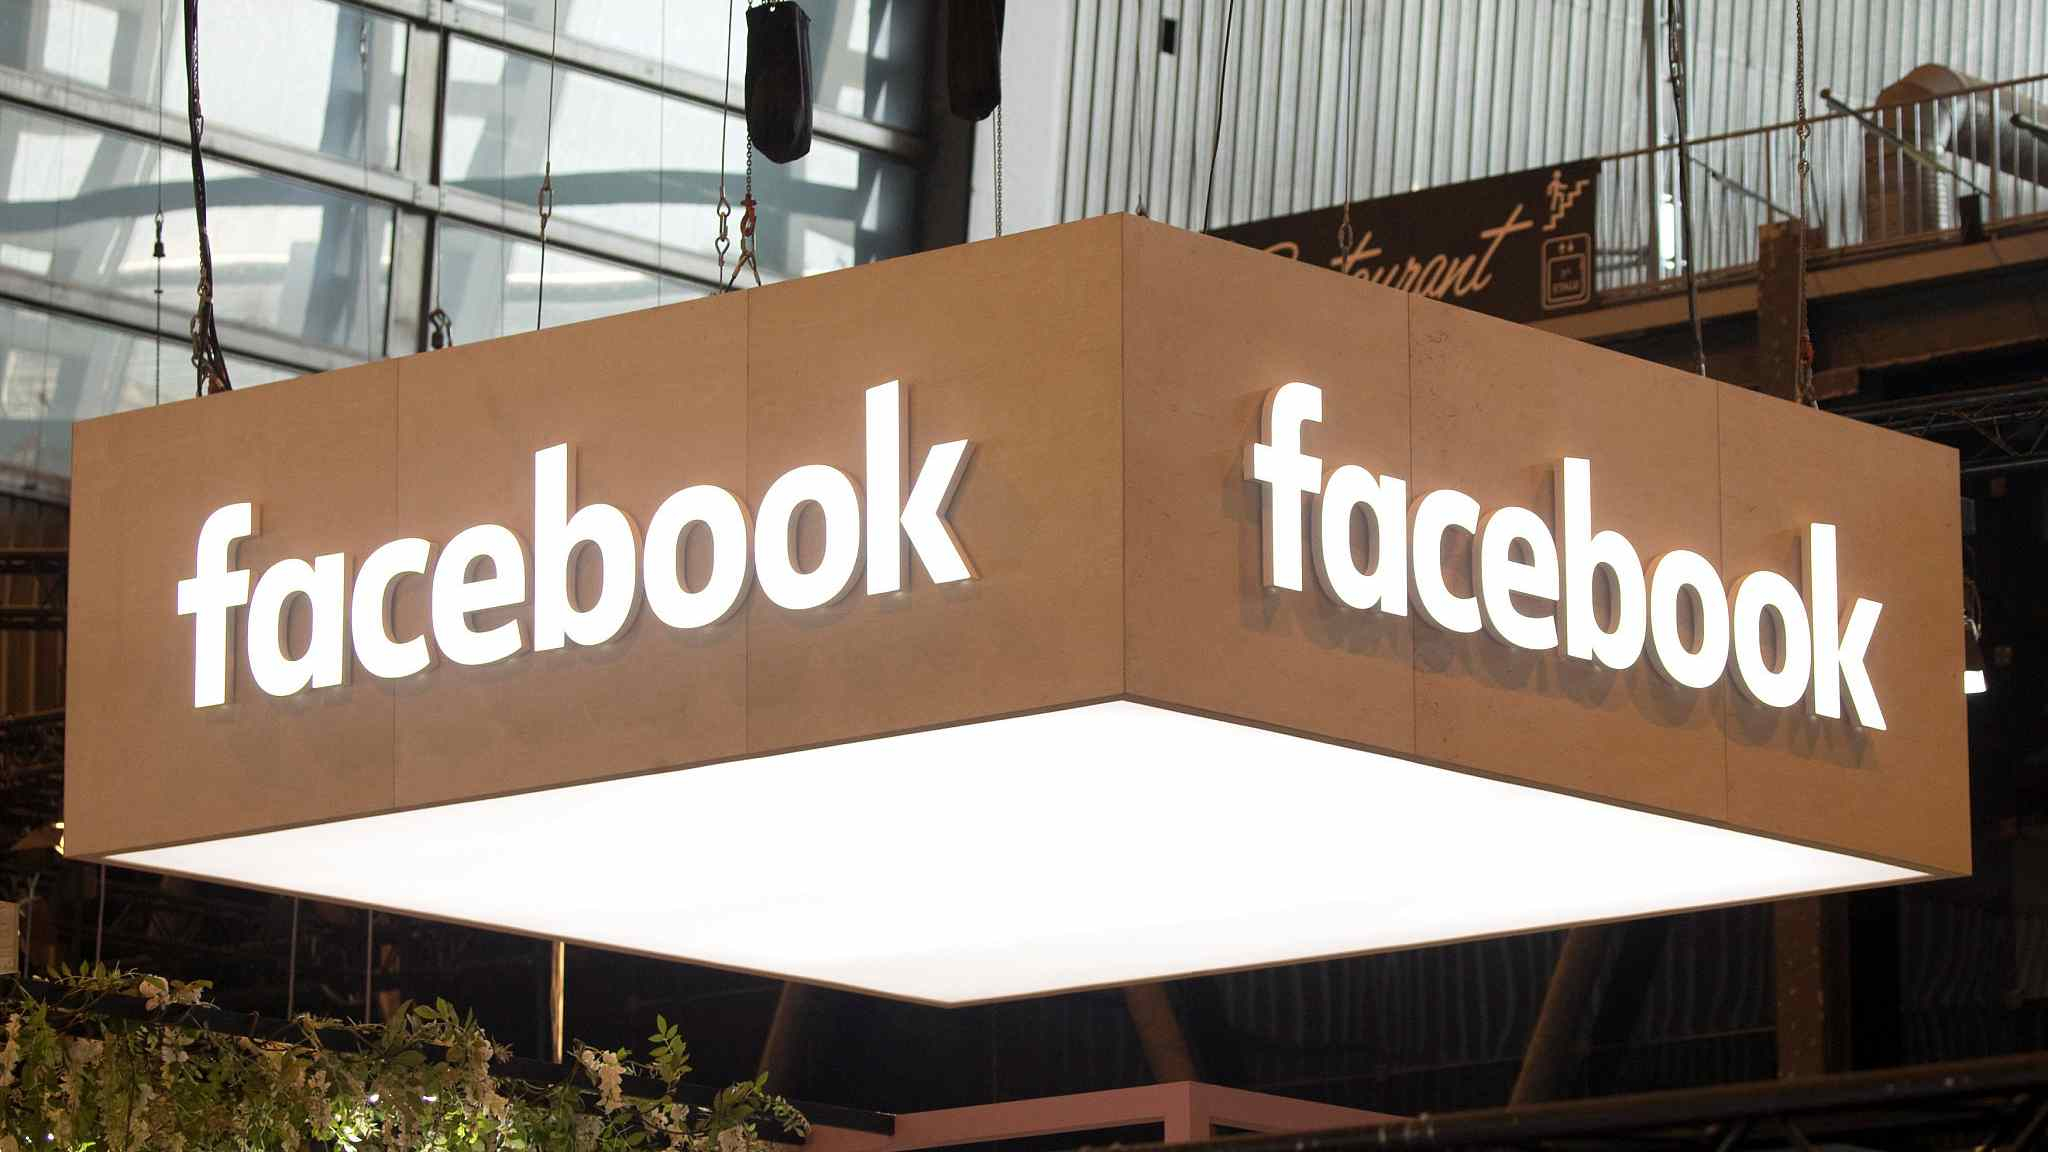 Facebook posts double-digit growth in quarterly, yearly revenues